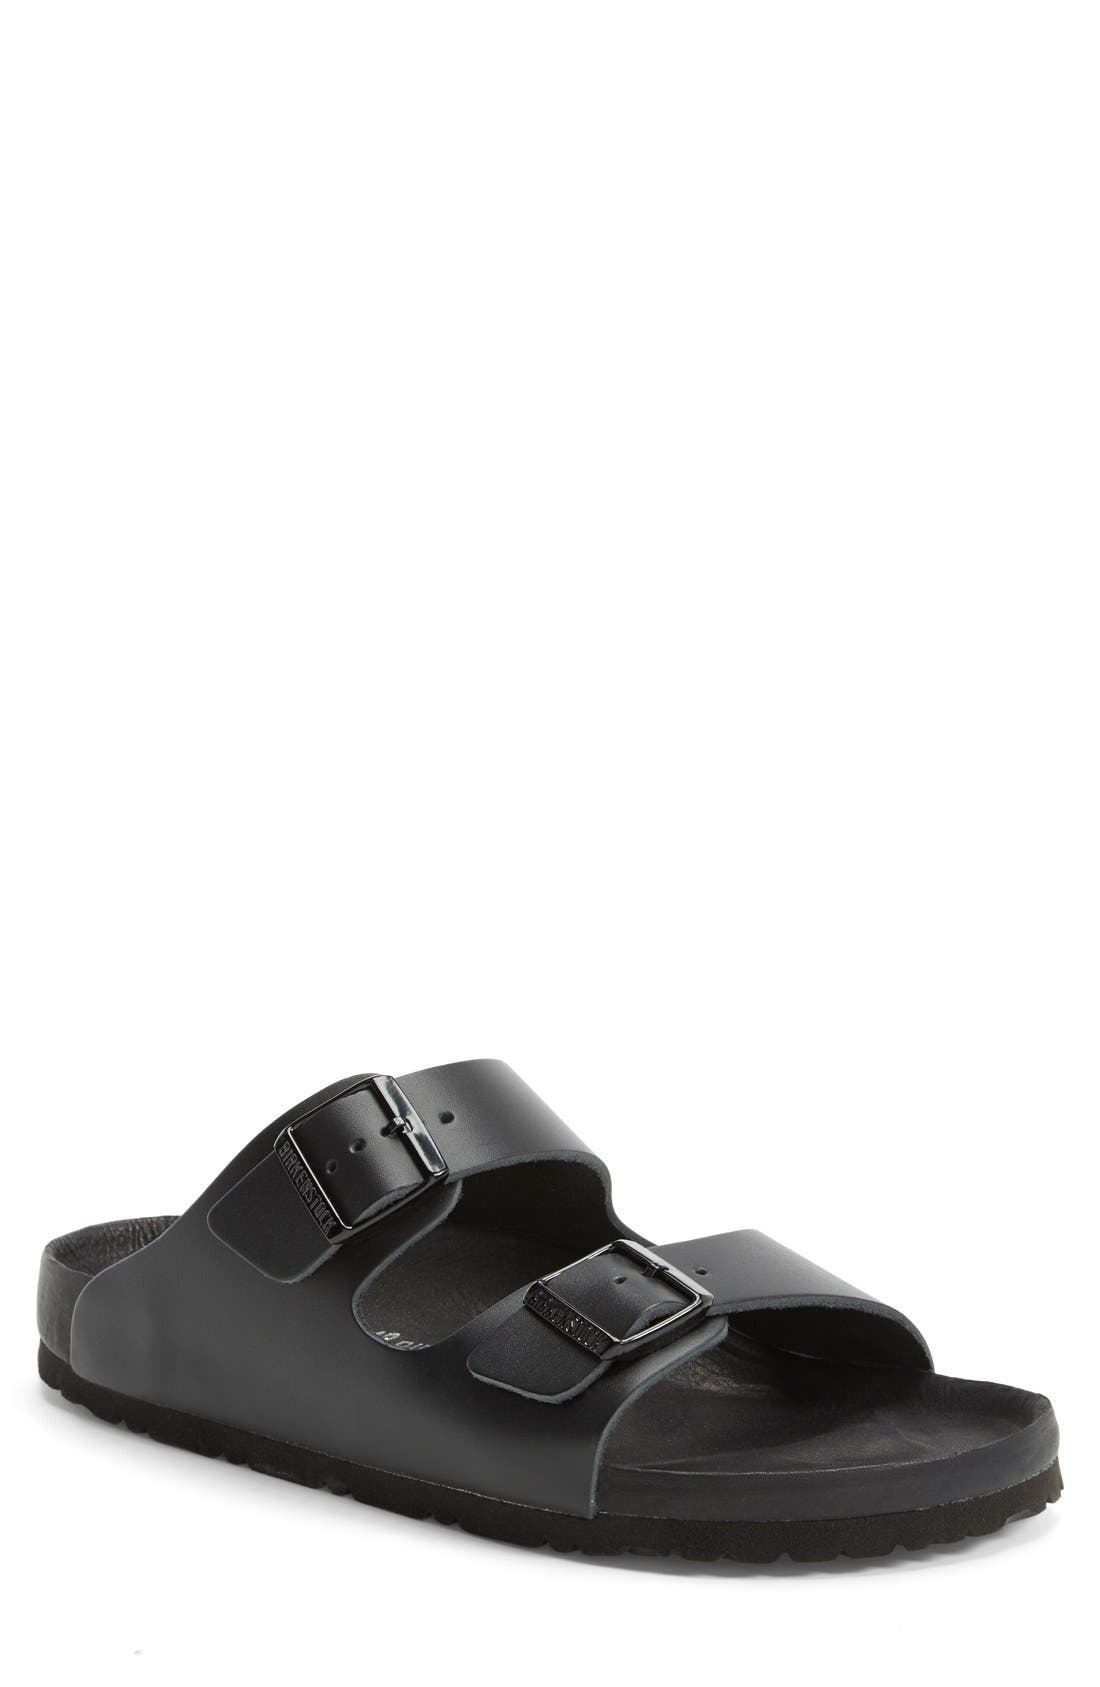 BIRKENSTOCK Monterey Leather Slide Sandal, Main, color, BLACK